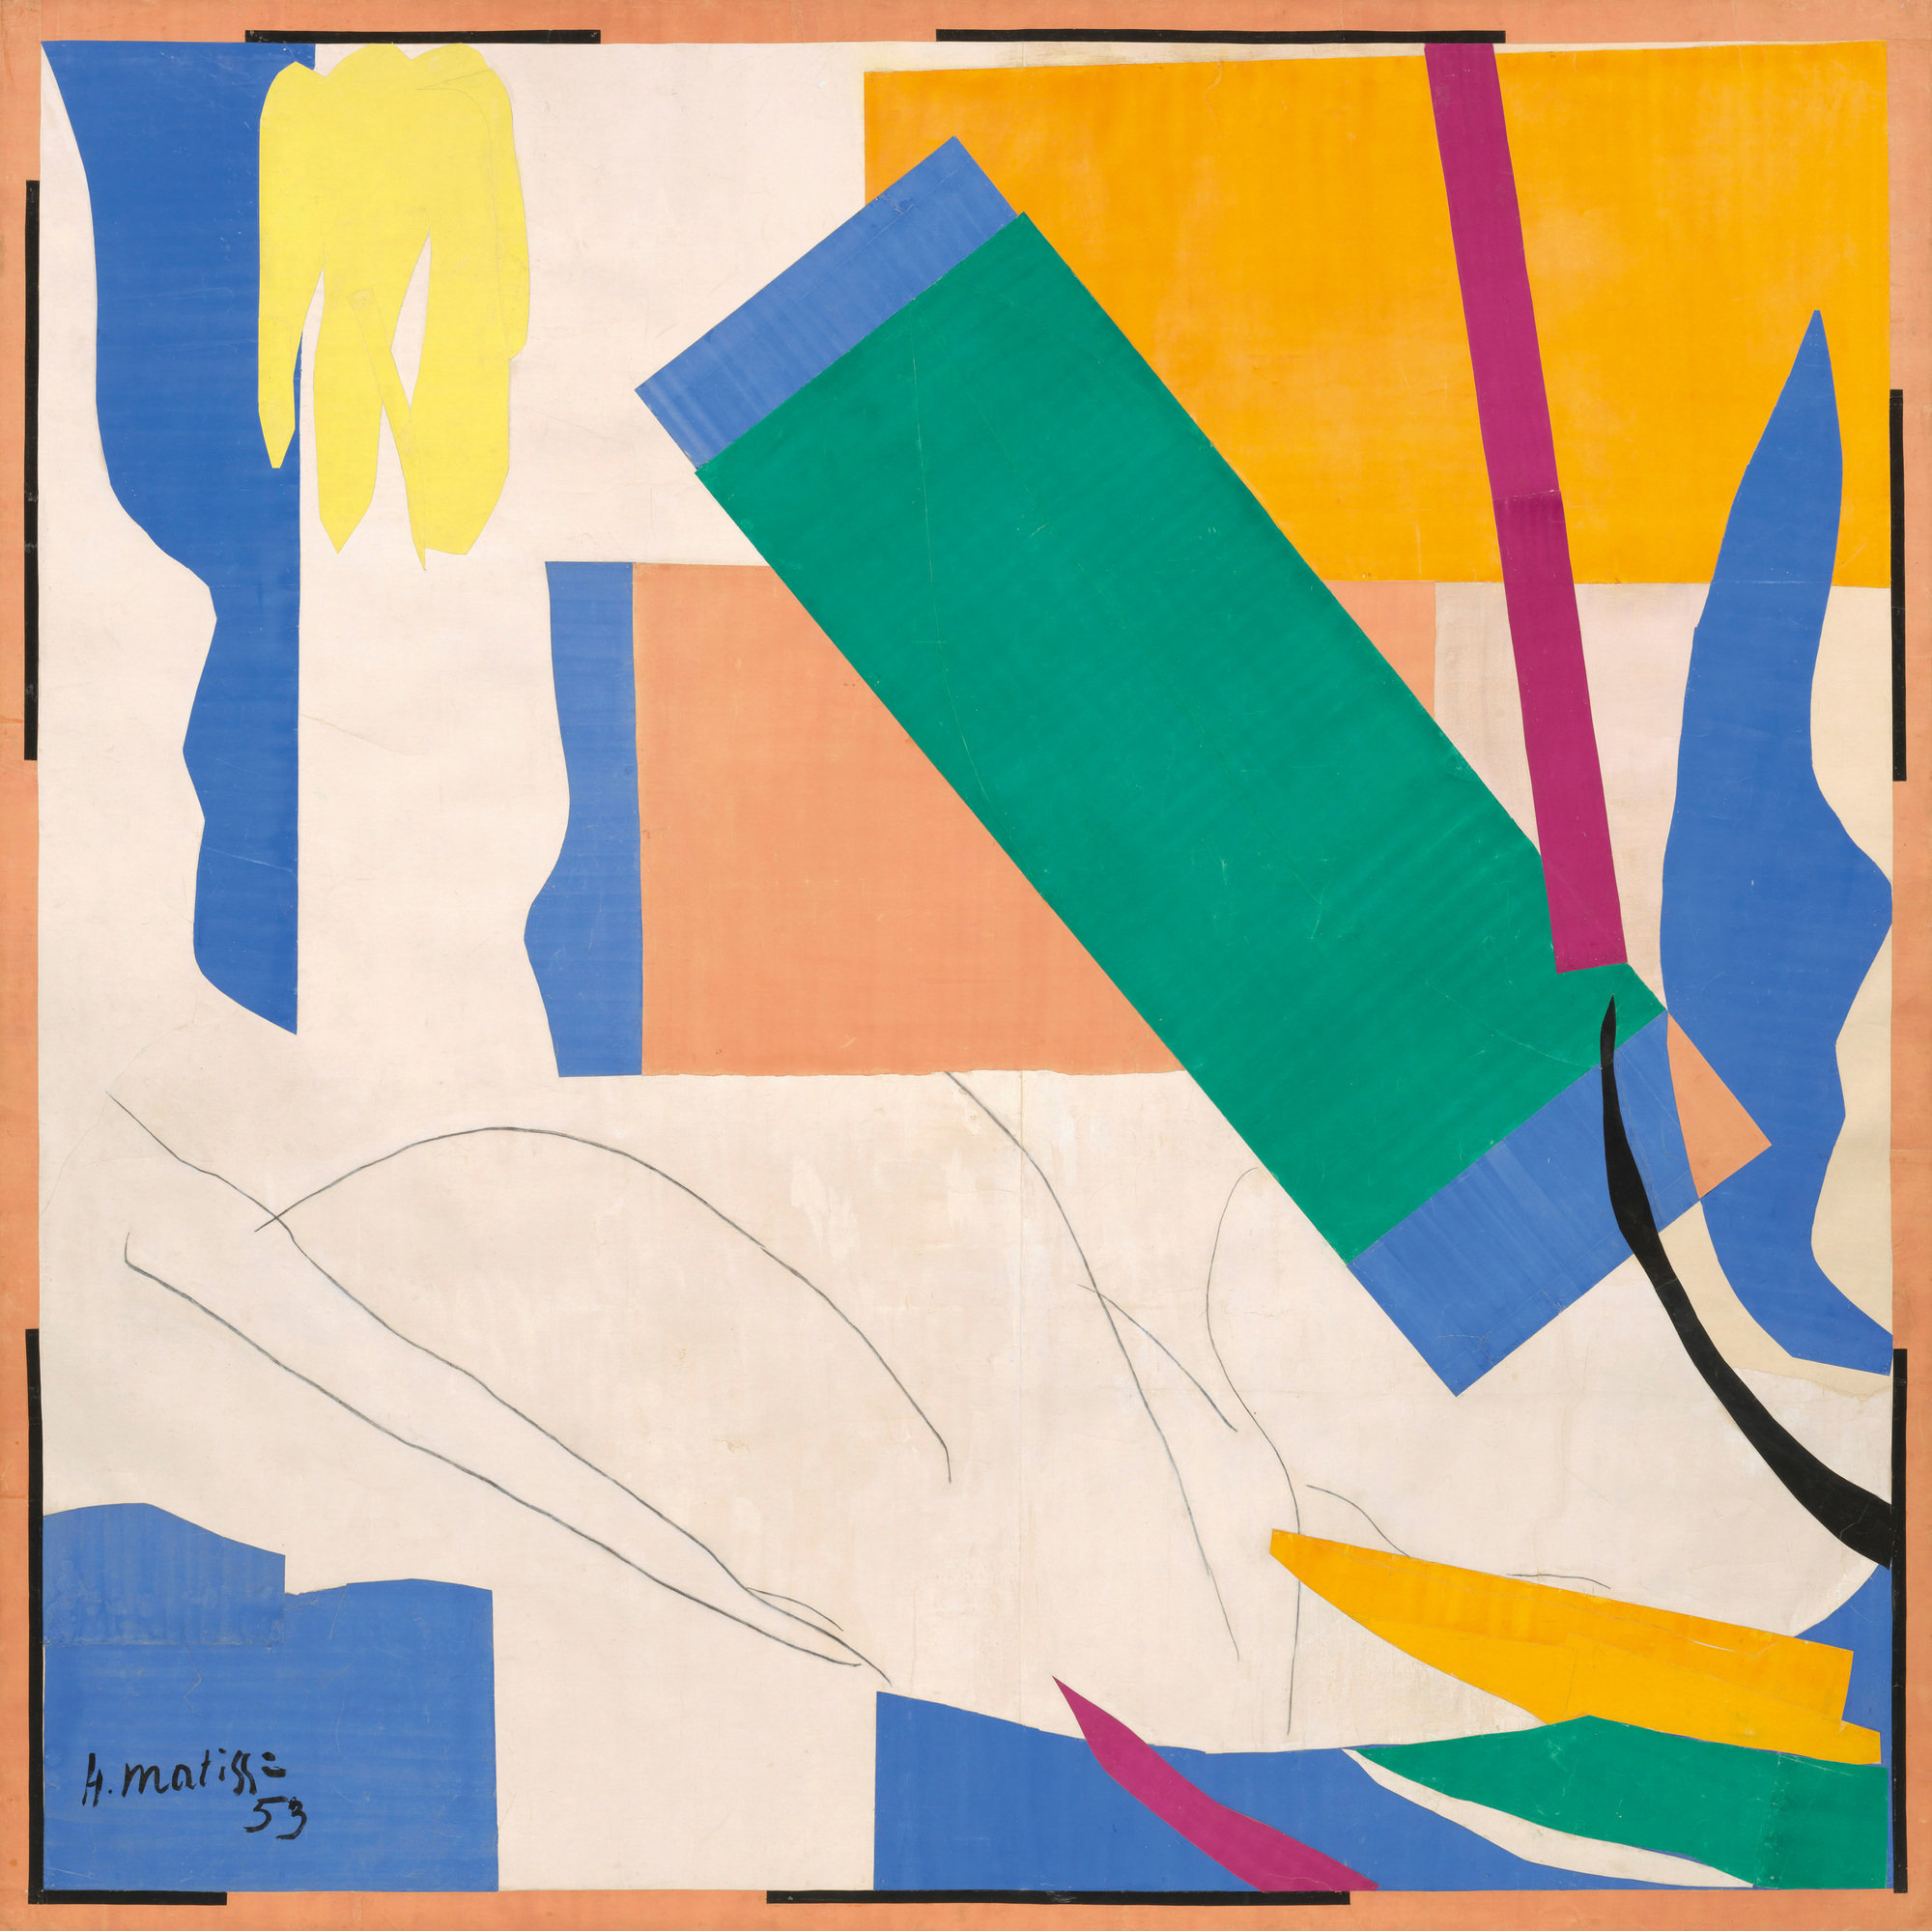 Henri Matisse (French, 1869–1954).  Memory of Oceania . Nice-Cimiez, Hôtel Régina, summer 1952–early 1953. Gouache on paper, cut and pasted, and charcoal on paper mounted on canvas, 9′ 4″ x 9′ 4 7/8″ (284.4 x 286.4 cm). The Museum of Modern Art, New York. Mrs. Simon Guggenheim Fund. © 2014 Succession H. Matisse, Paris/Artists Rights Society (ARS), New York